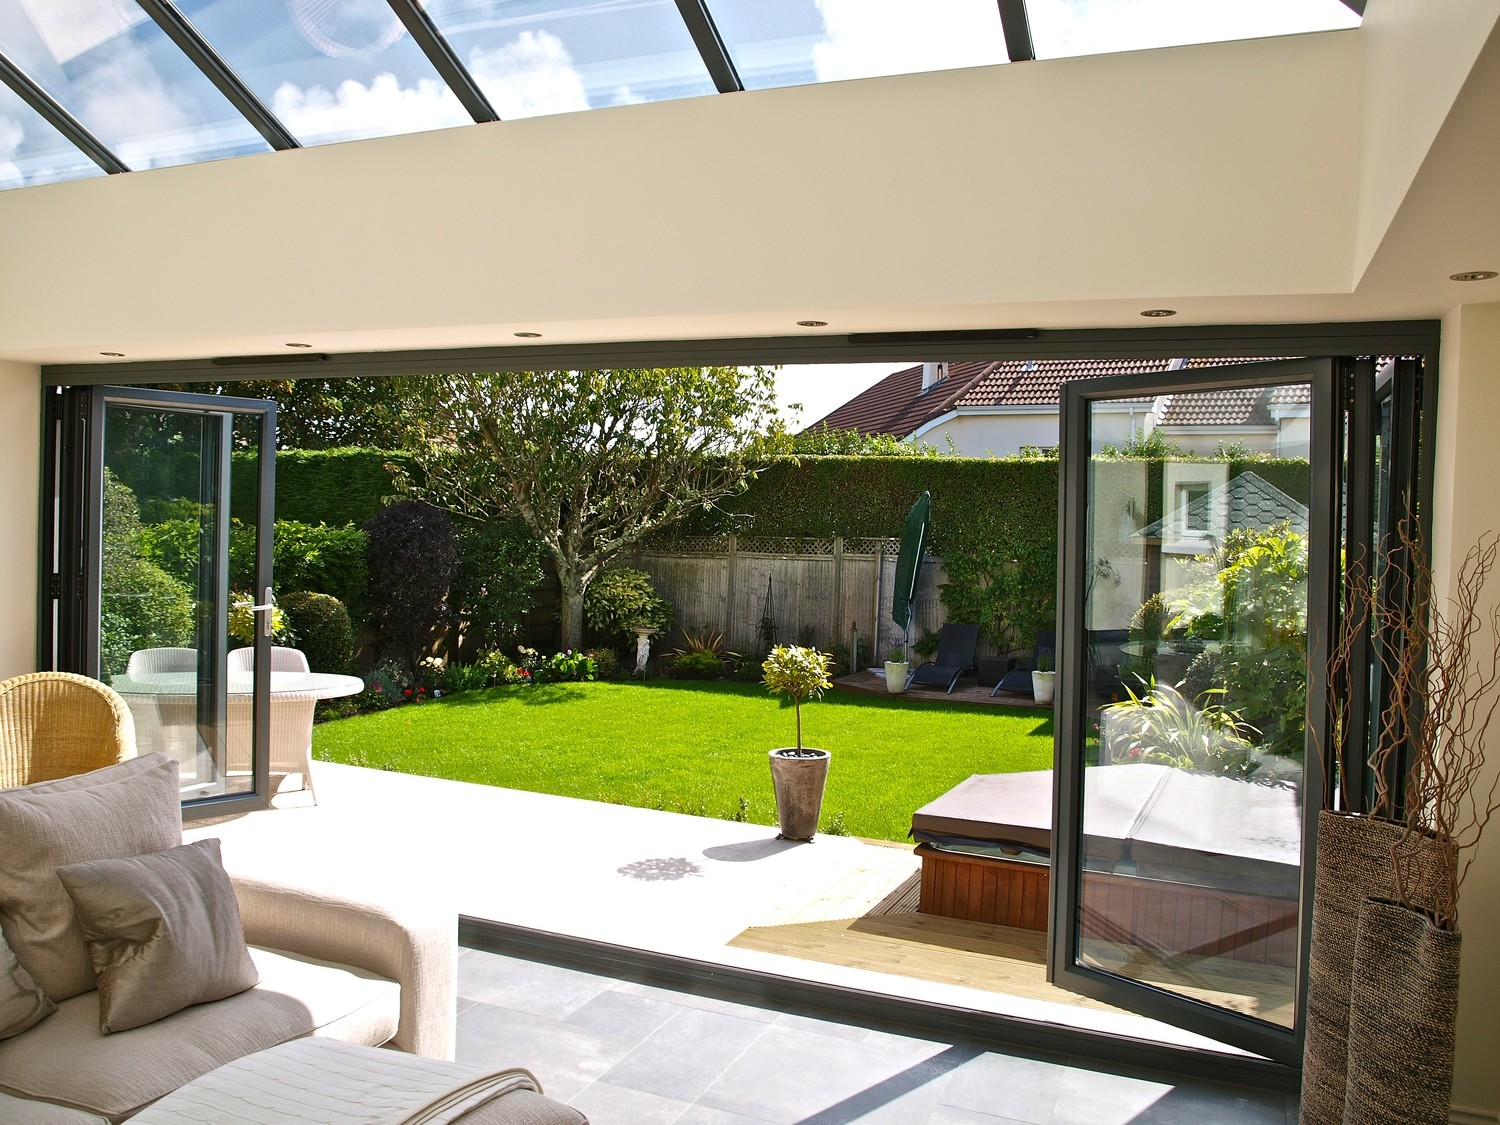 5 Panel Aluminium Bifolding Door